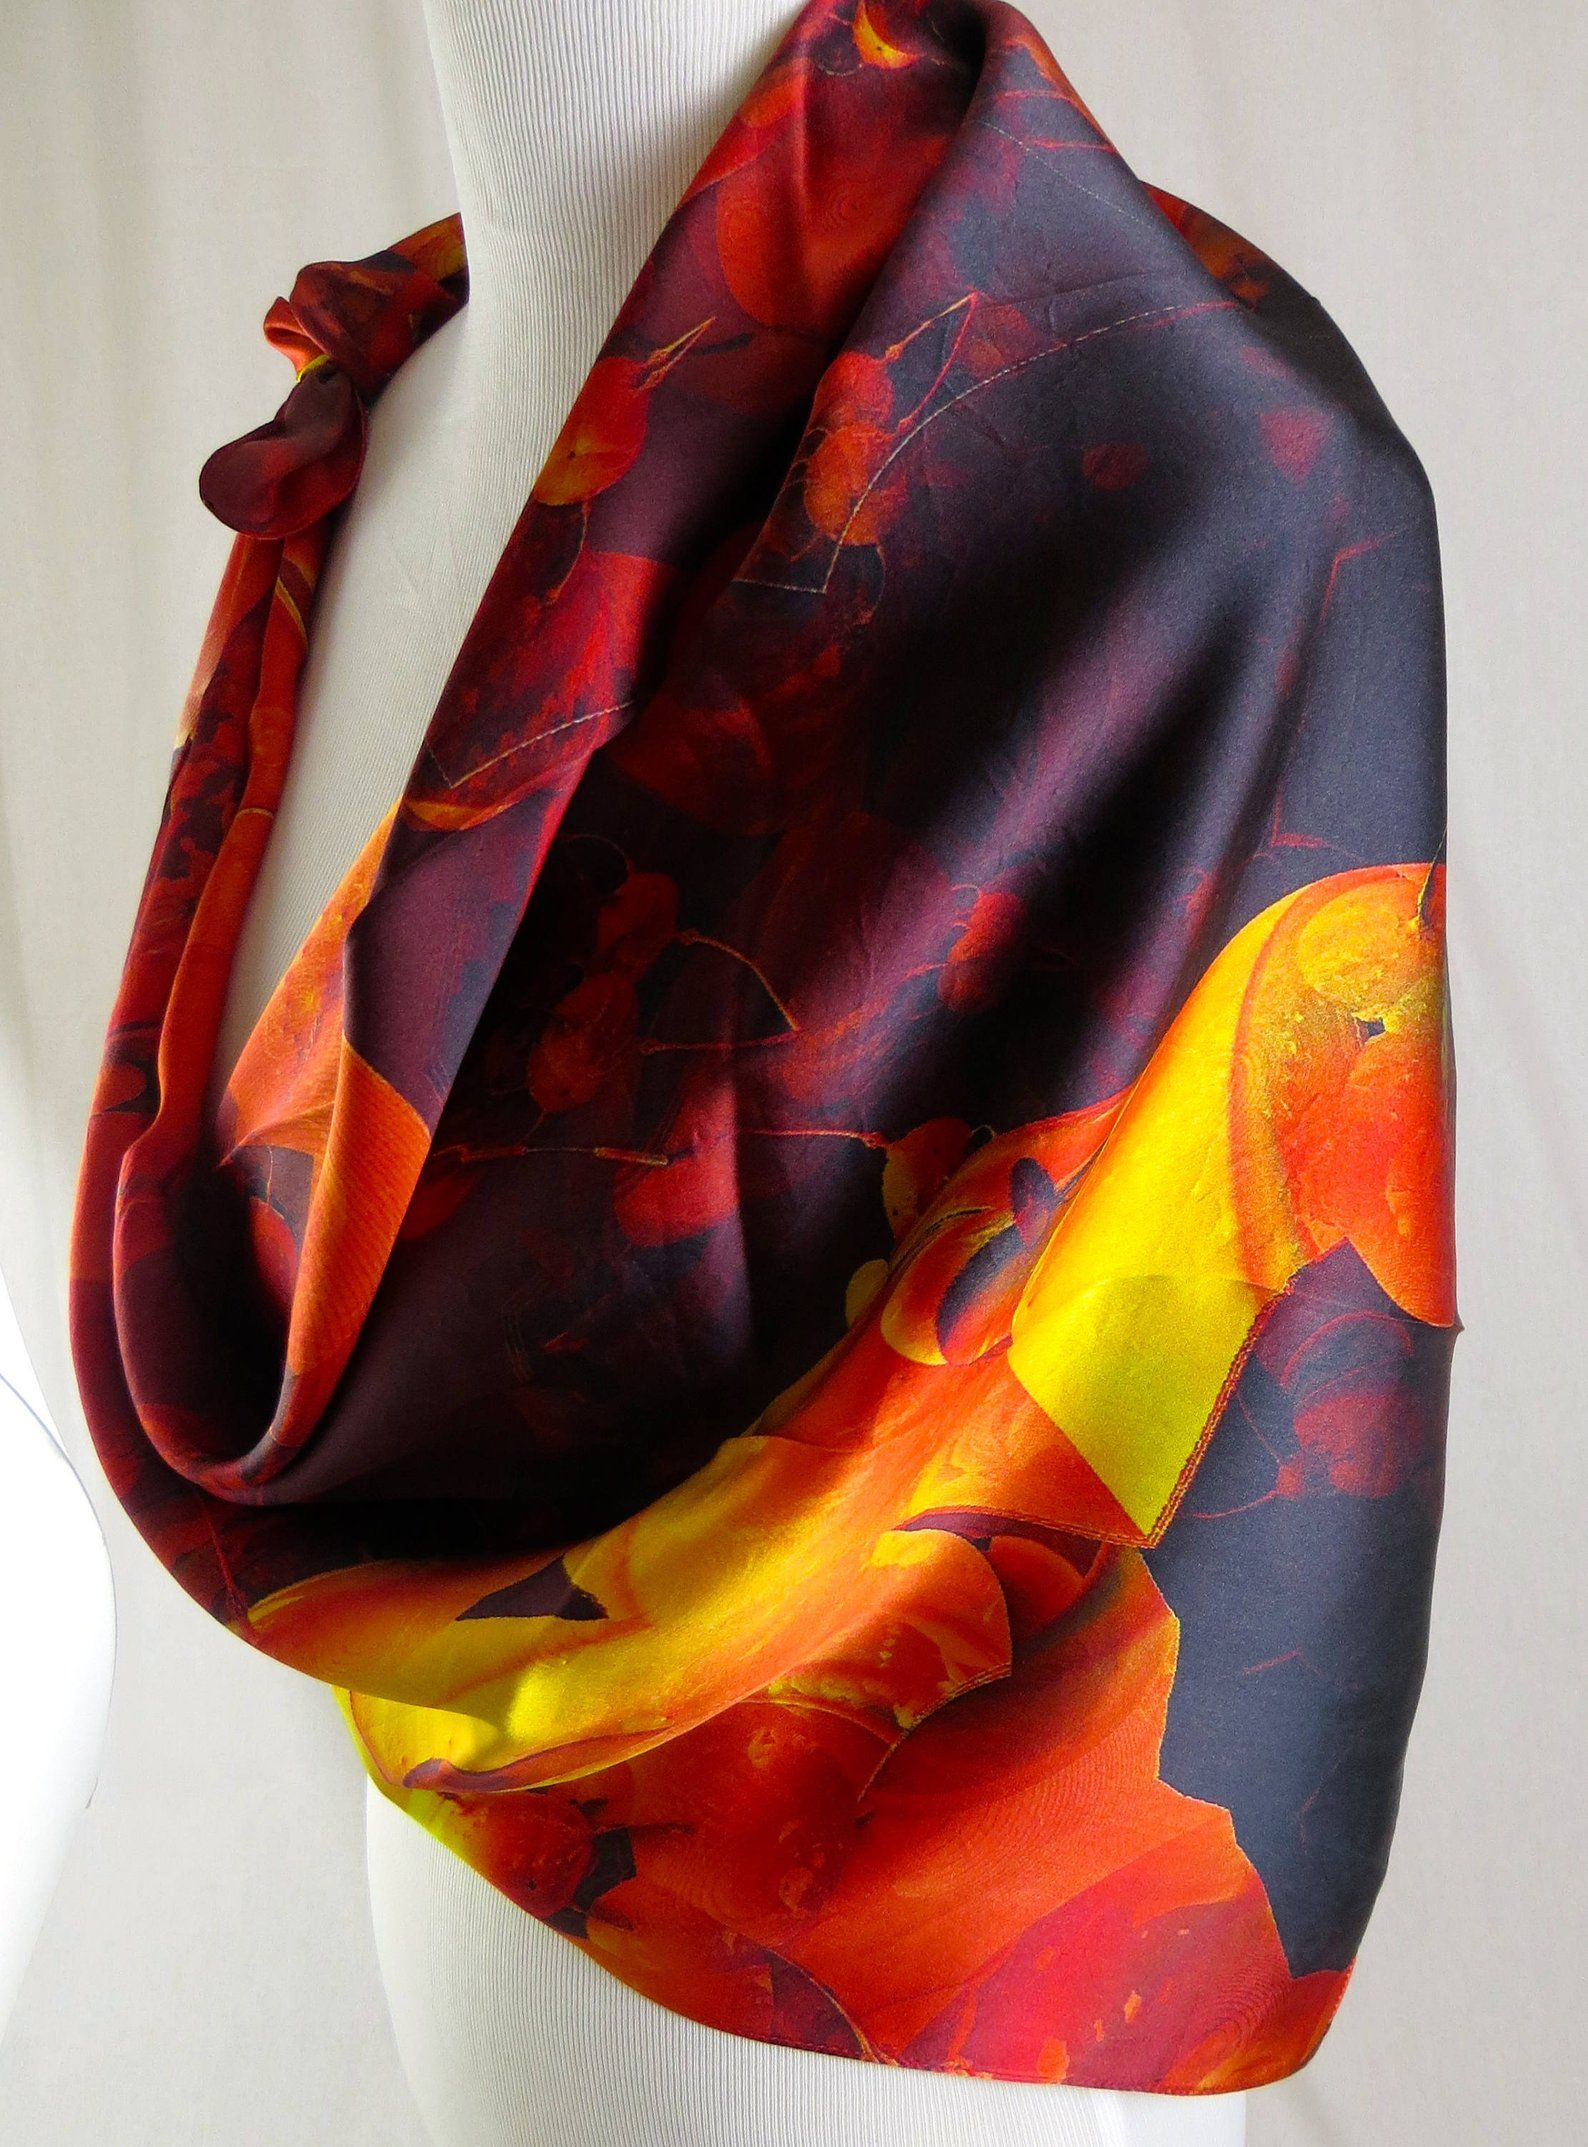 bfc9712fe Red Silk Scarf, Fire of the Heart 3D Fractal design, Psychedelic ...